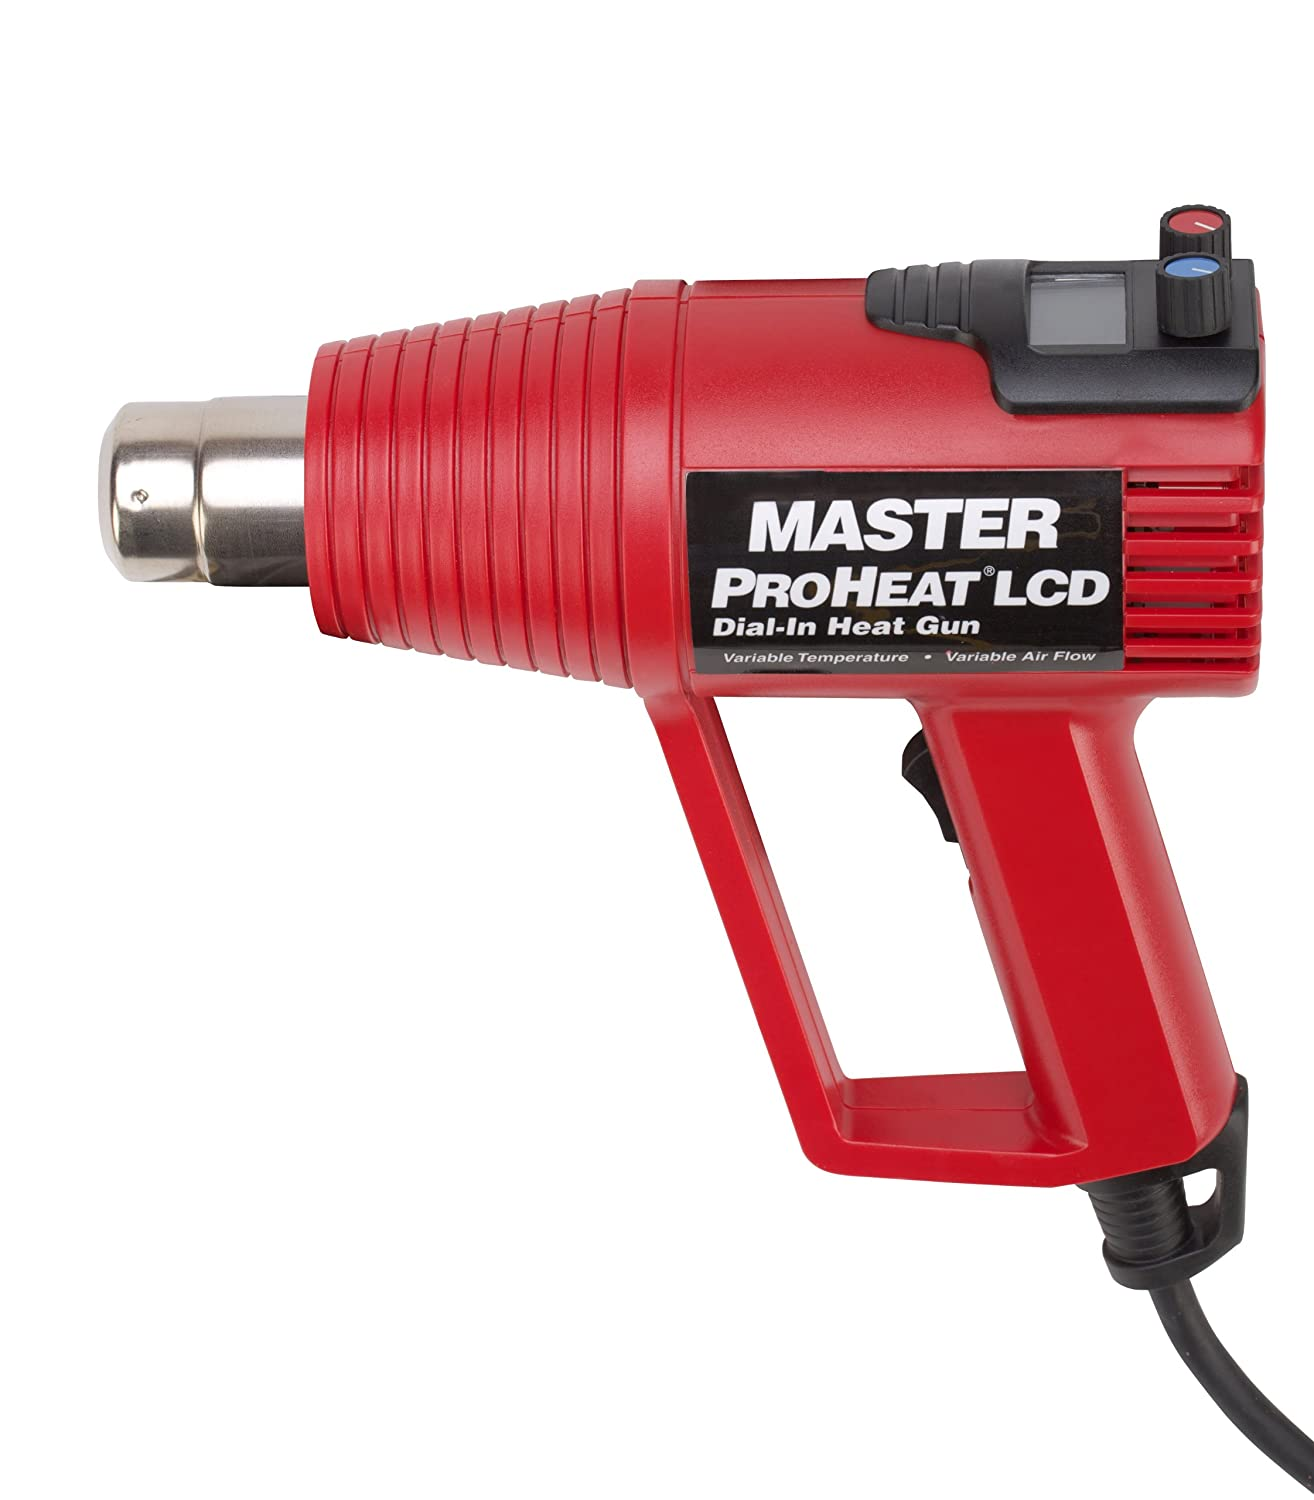 Master Appliance PH-1400 LCD Display Proheat Professional Heat Gun, Variable Temp and Variable Airflow, Lightweight, 120V, Assembled in the USA